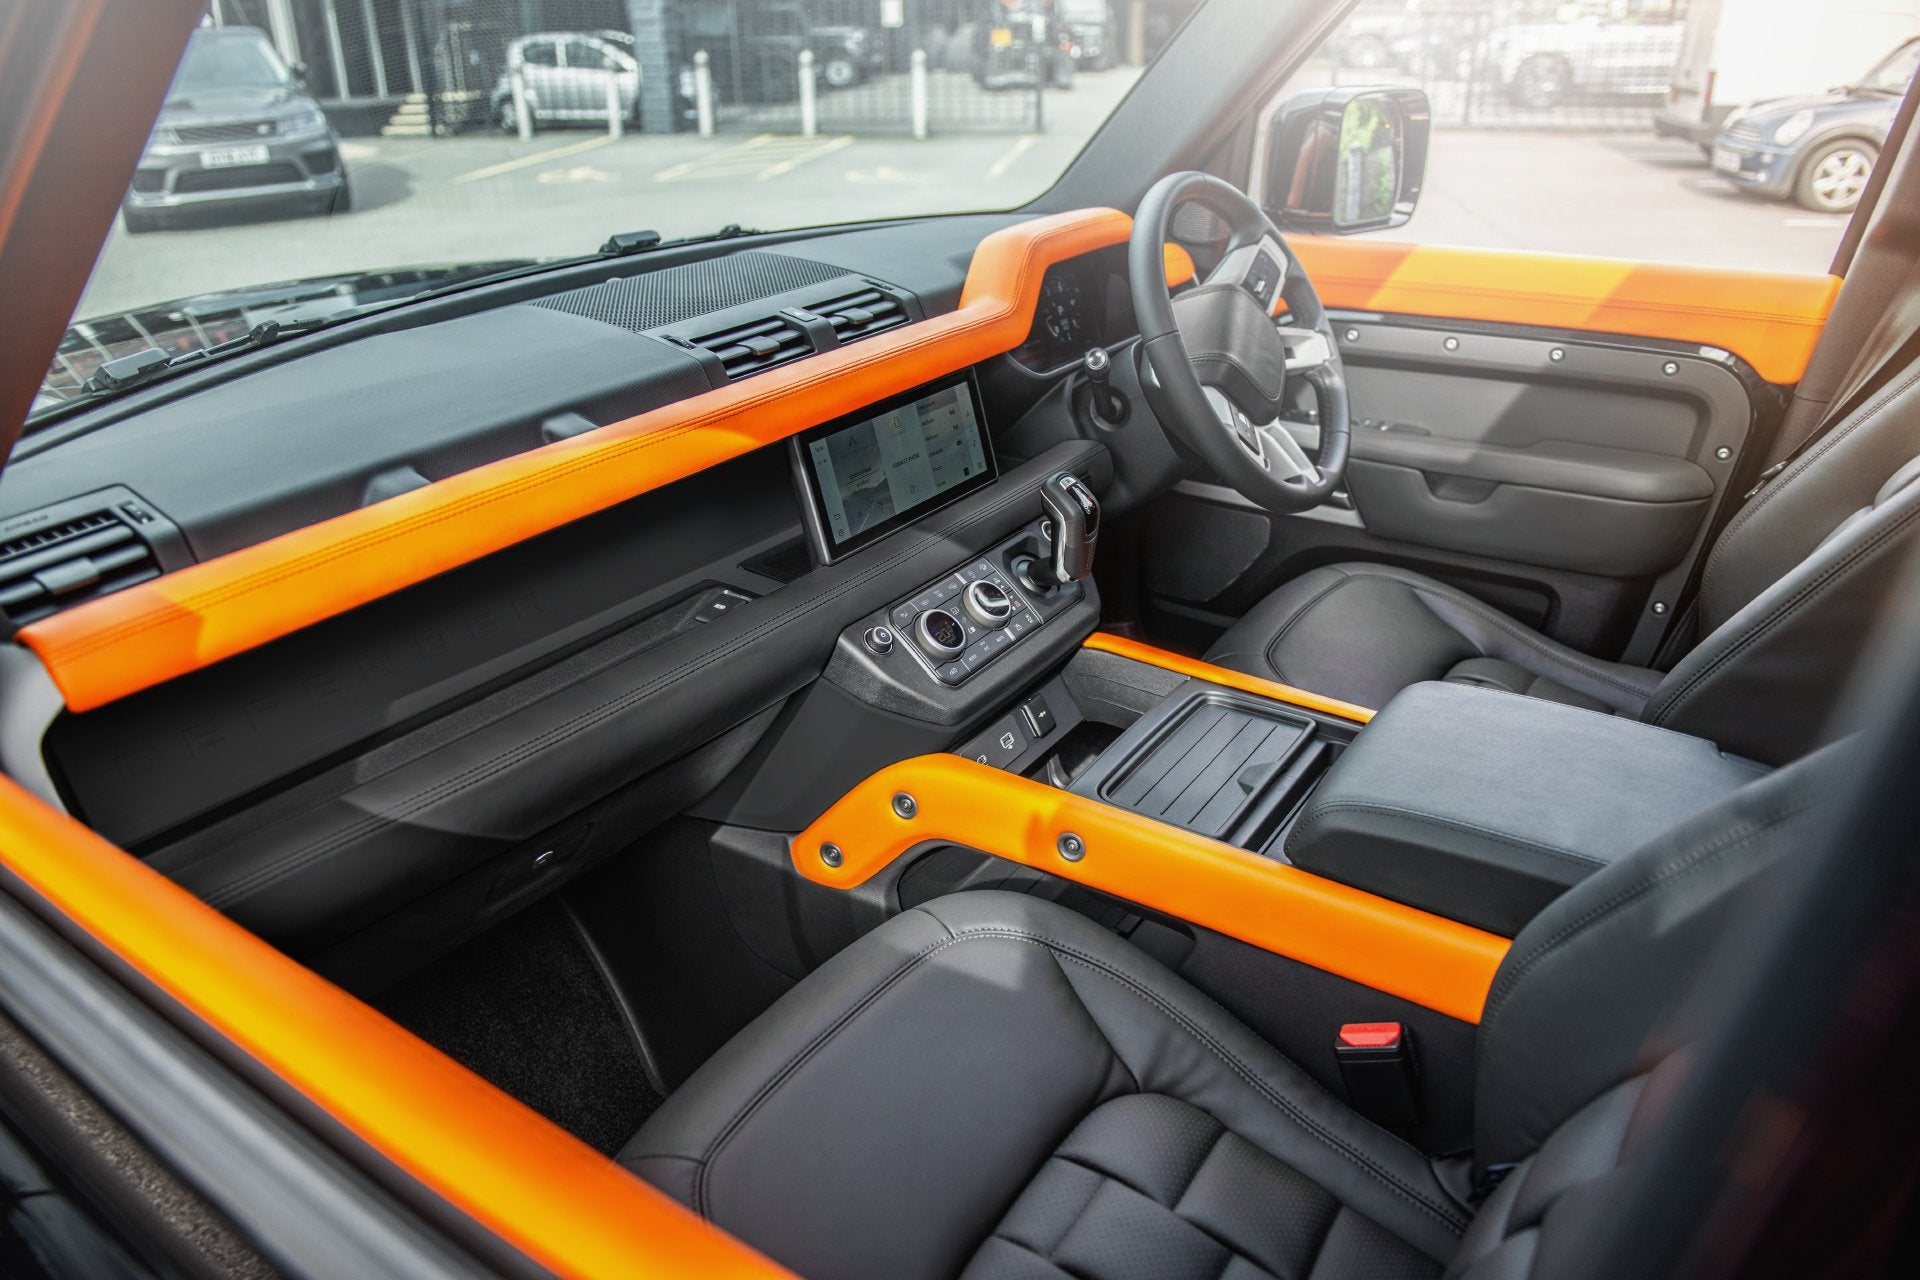 Land Rover Defender 110 (2020-Present) Environment 2: Upper and Lower Interior - Project Kahn